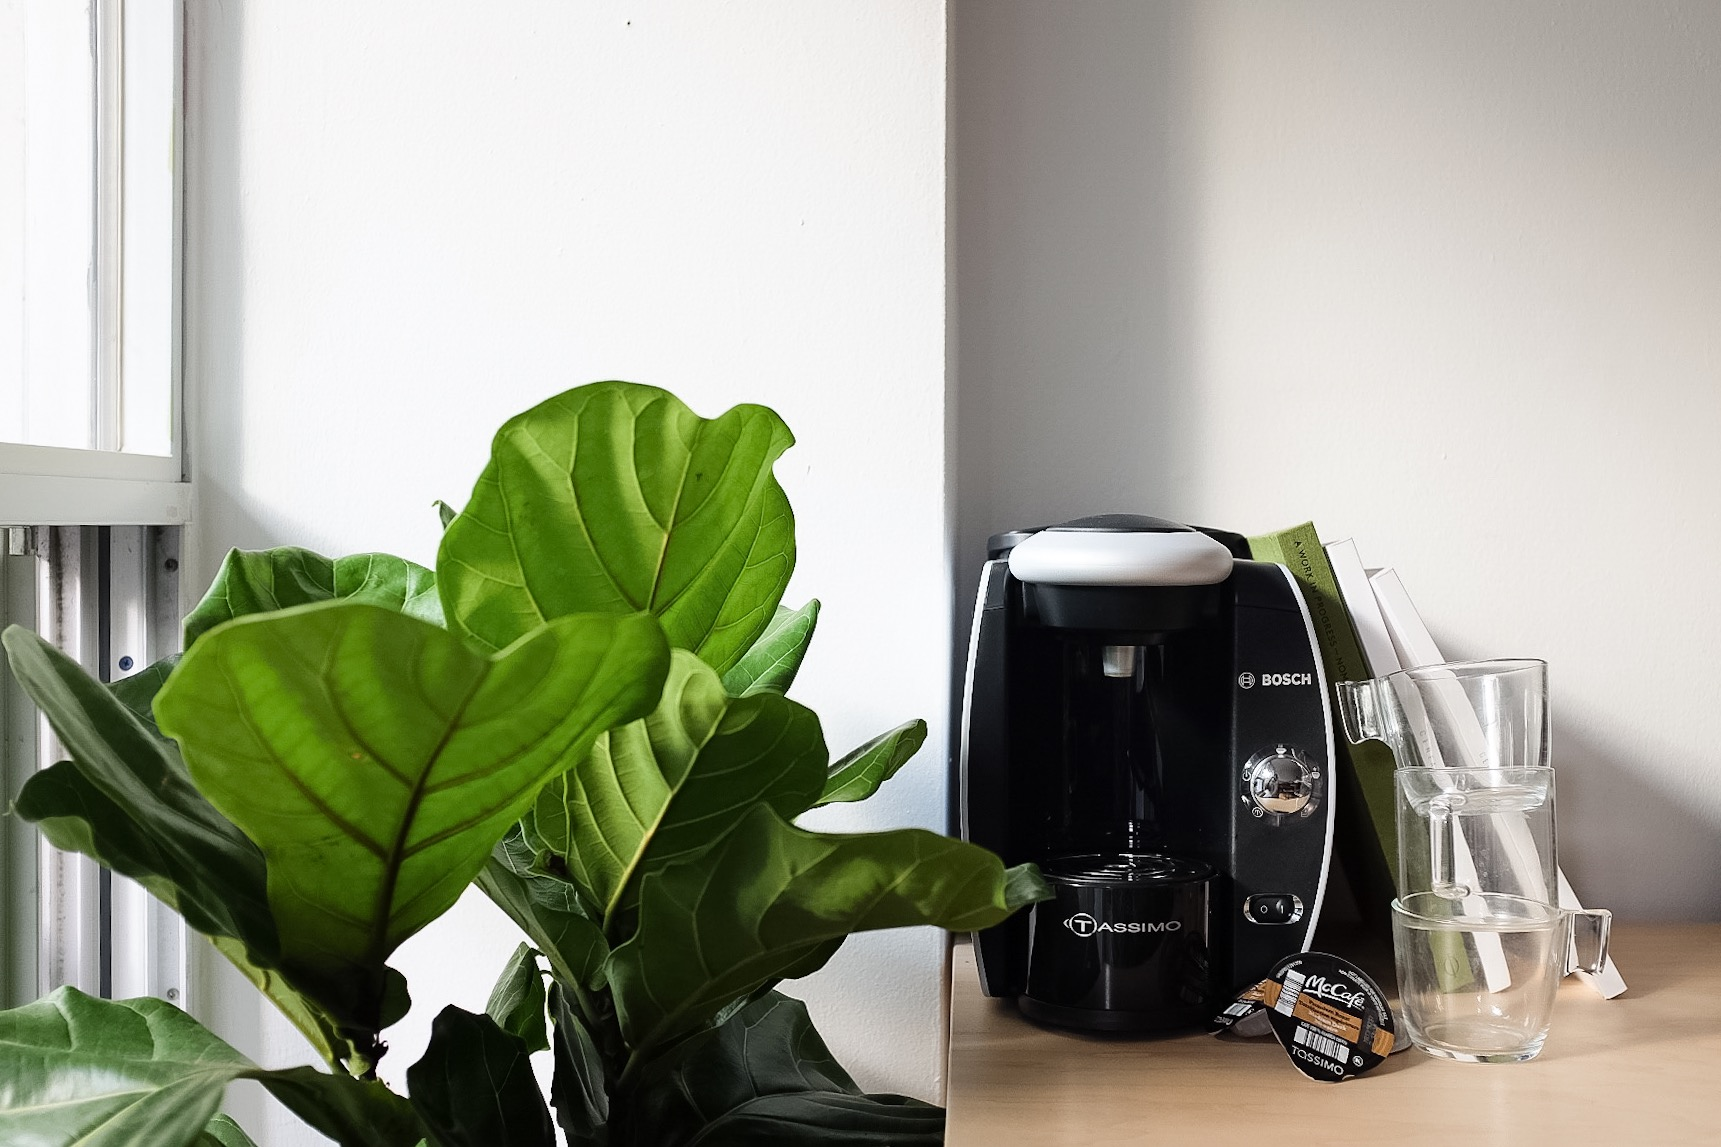 Trusted Tassimo machines and McCafé pods make for a great start of the day.